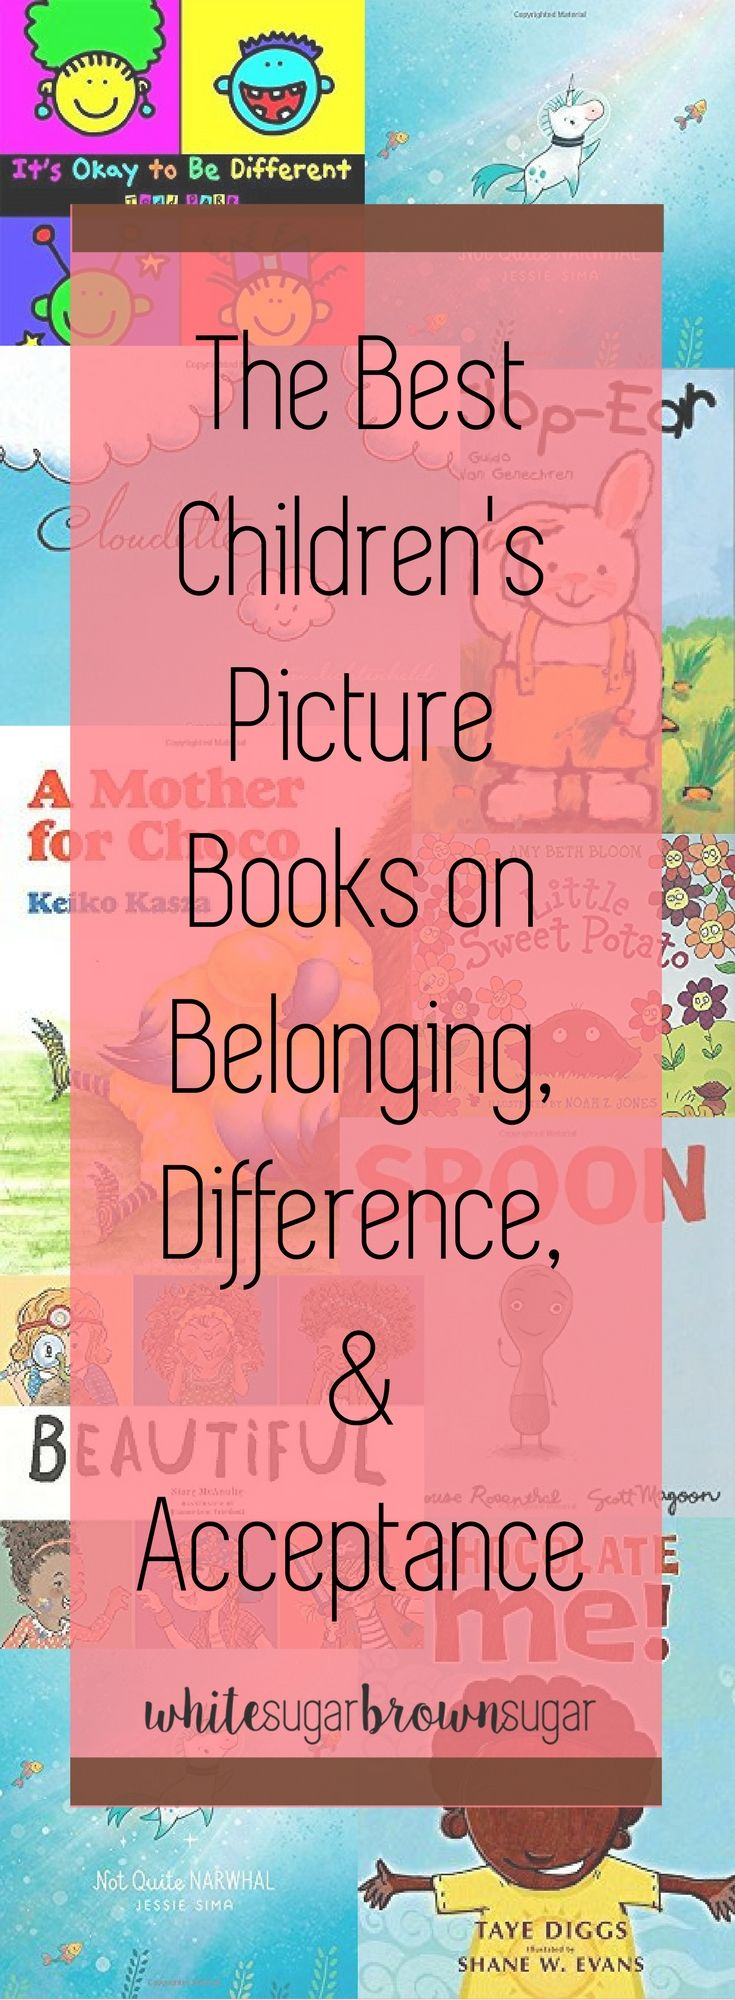 Books for Children of Color | Books on Acceptance | Books about Being Different | Books for Children | Children's Picture Books | African American Children | Books about Adoption | Interracial Adoption